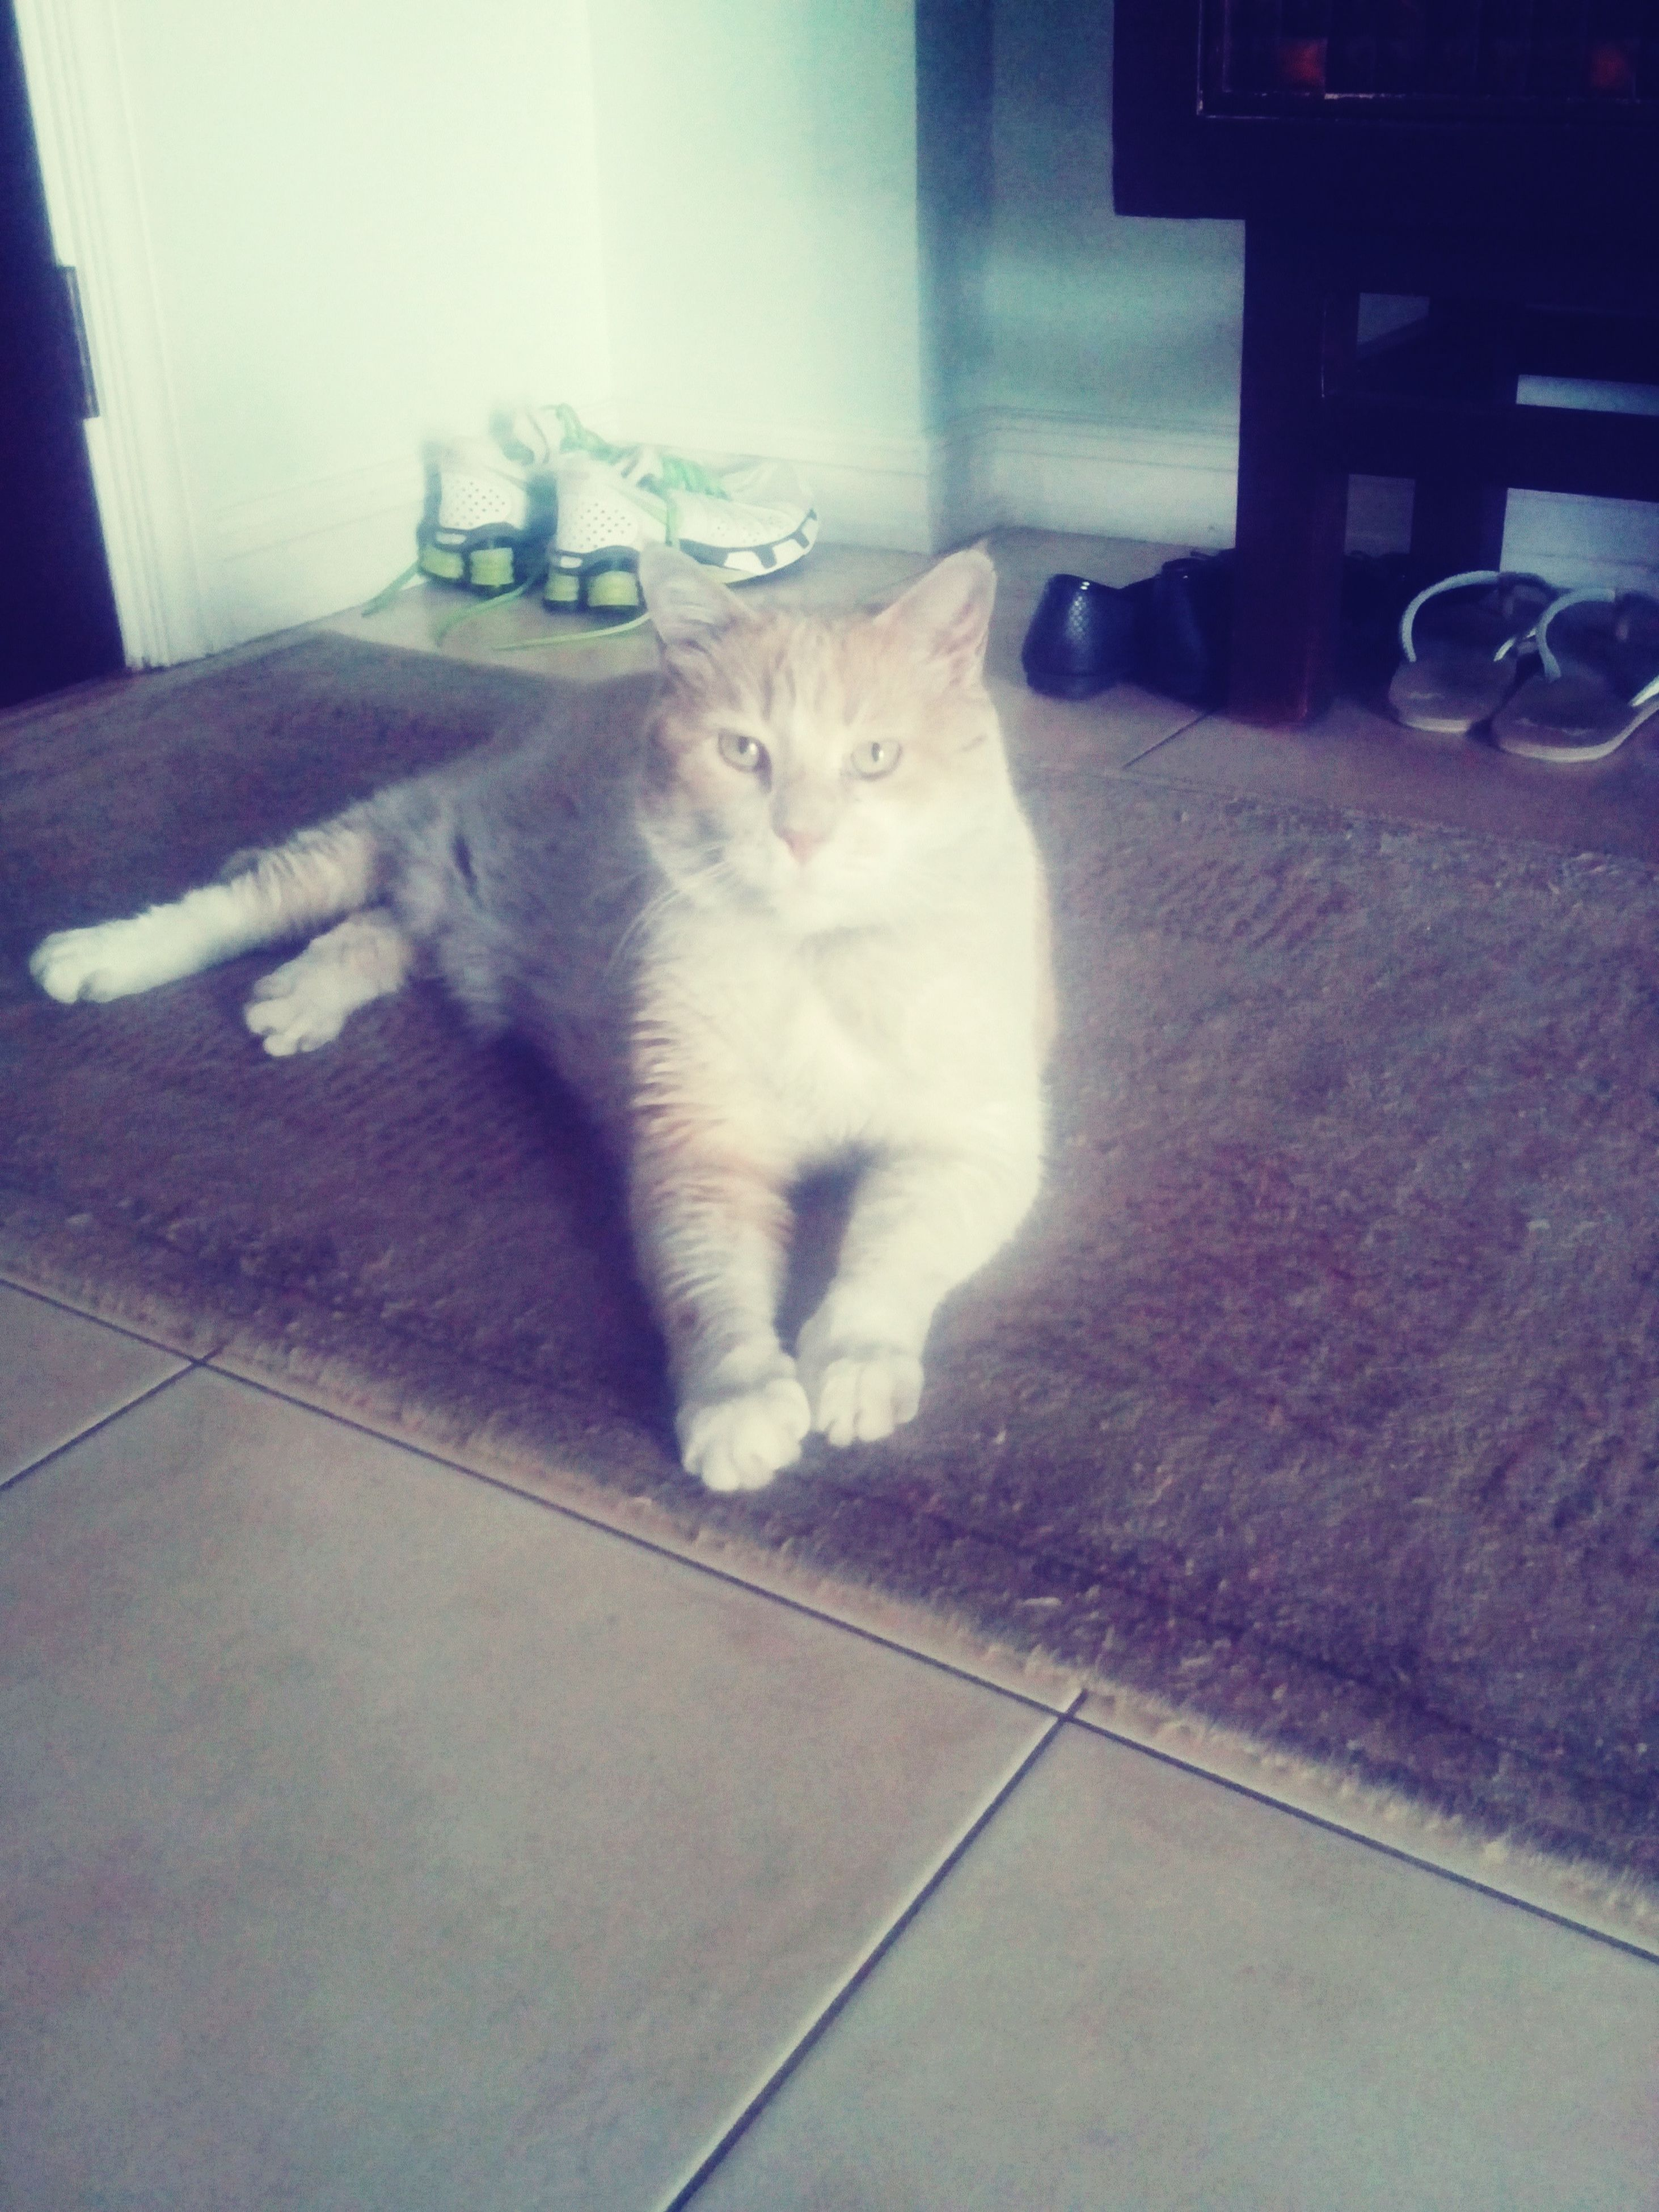 domestic cat, cat, pets, domestic animals, one animal, animal themes, feline, mammal, indoors, relaxation, whisker, sitting, portrait, resting, looking at camera, lying down, home interior, no people, full length, alertness